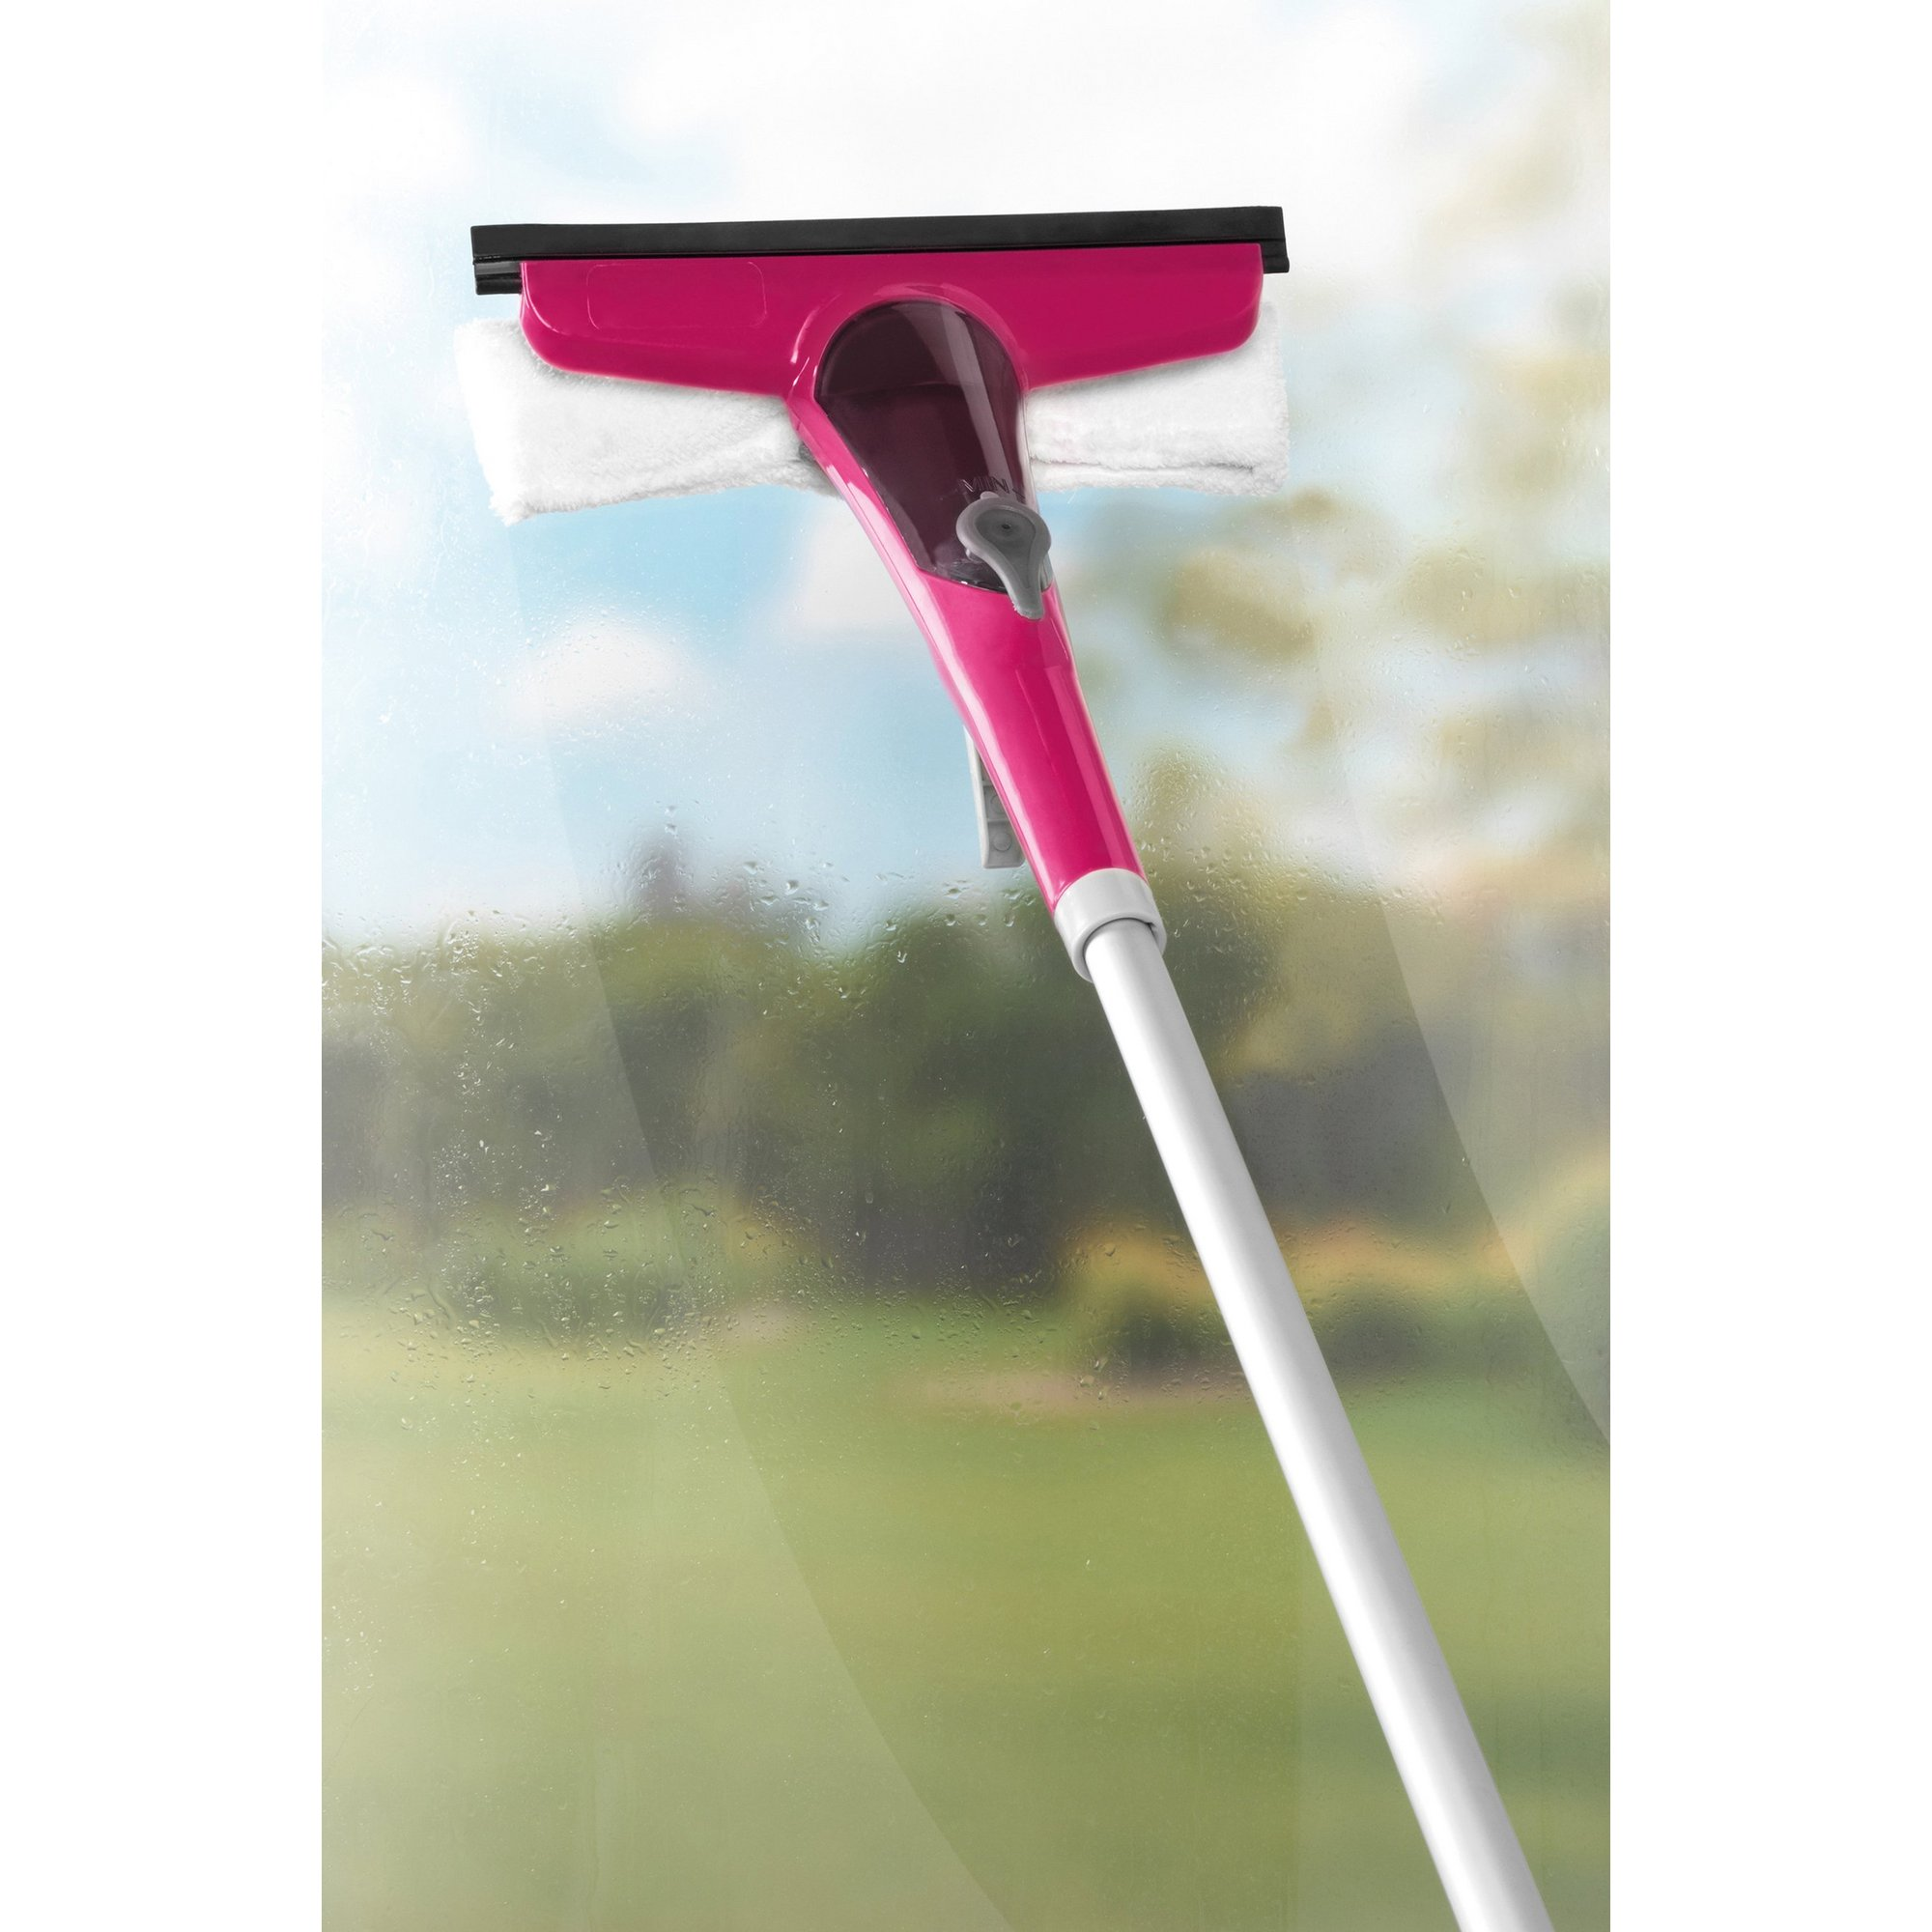 Image of Kleeneze 2-In-1 Easy-Fill Long Reach Spray Window Cleaner